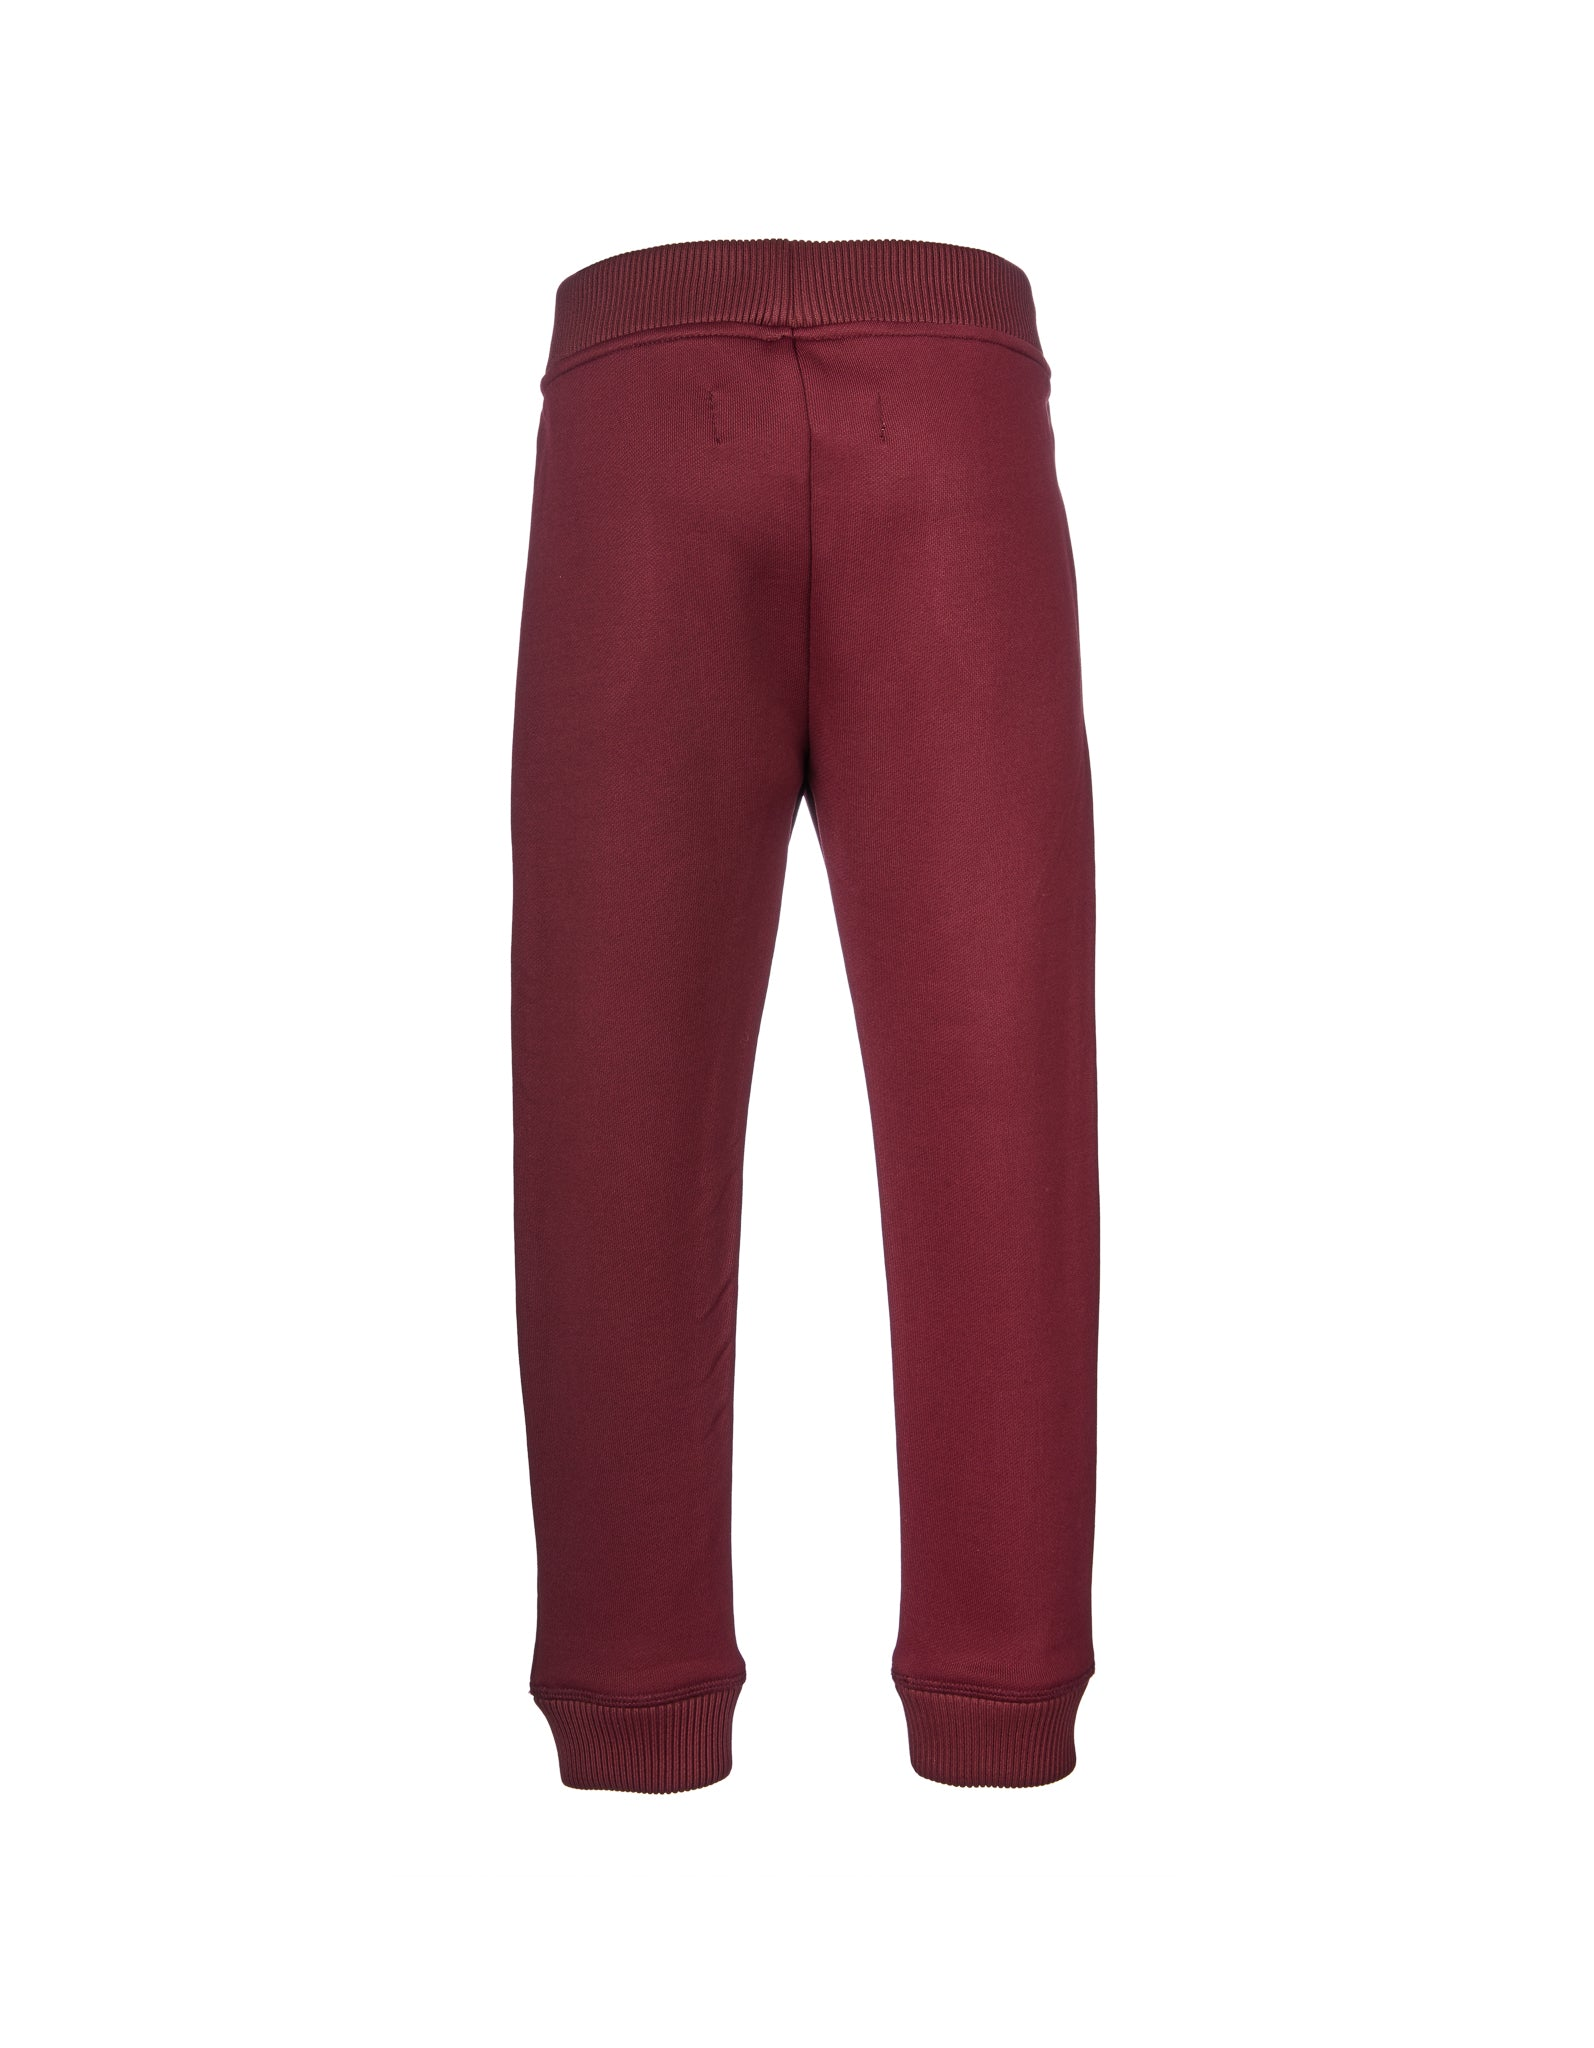 FLEECE ELASTIC CUFF TROUSERS IN BURGUNDY